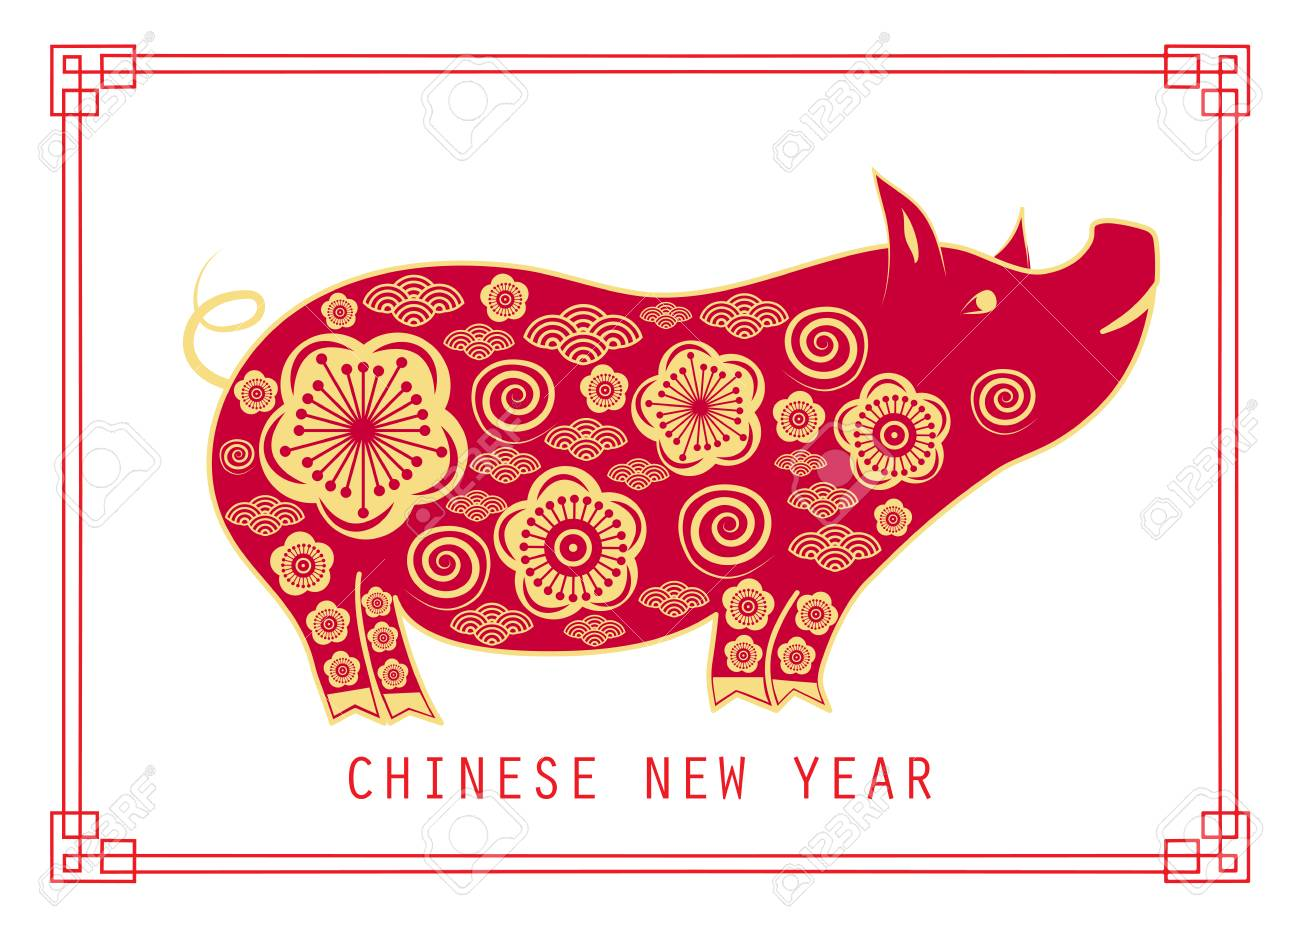 Happy chinese new year 2019. Year of the pig.